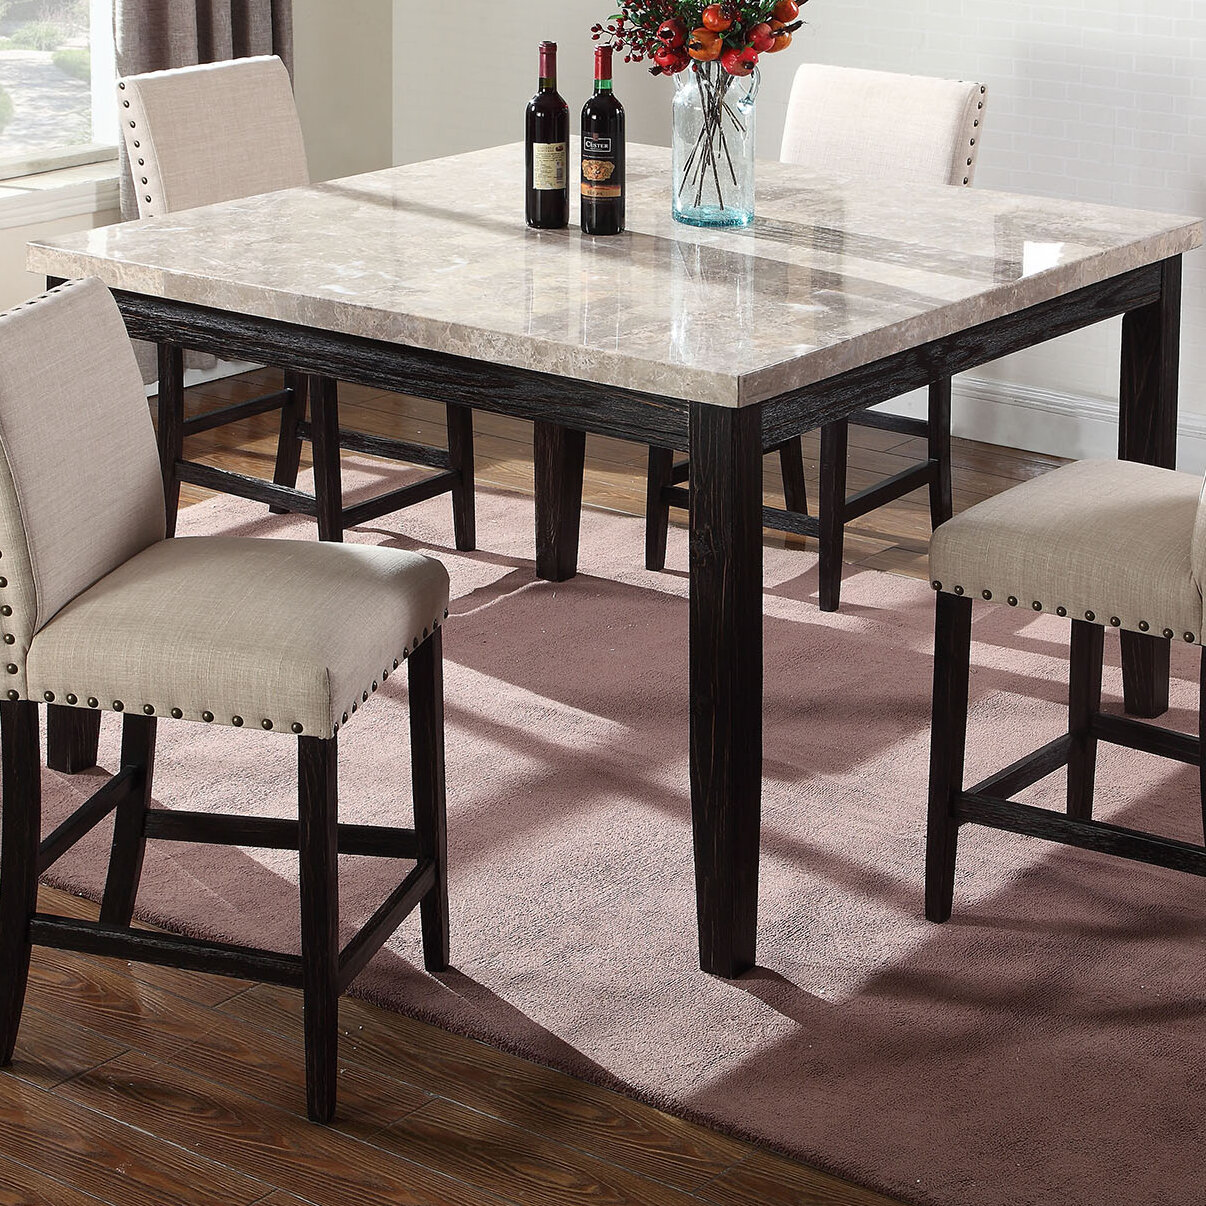 Marble Square Kitchen Dining Tables You Ll Love In 2021 Wayfair